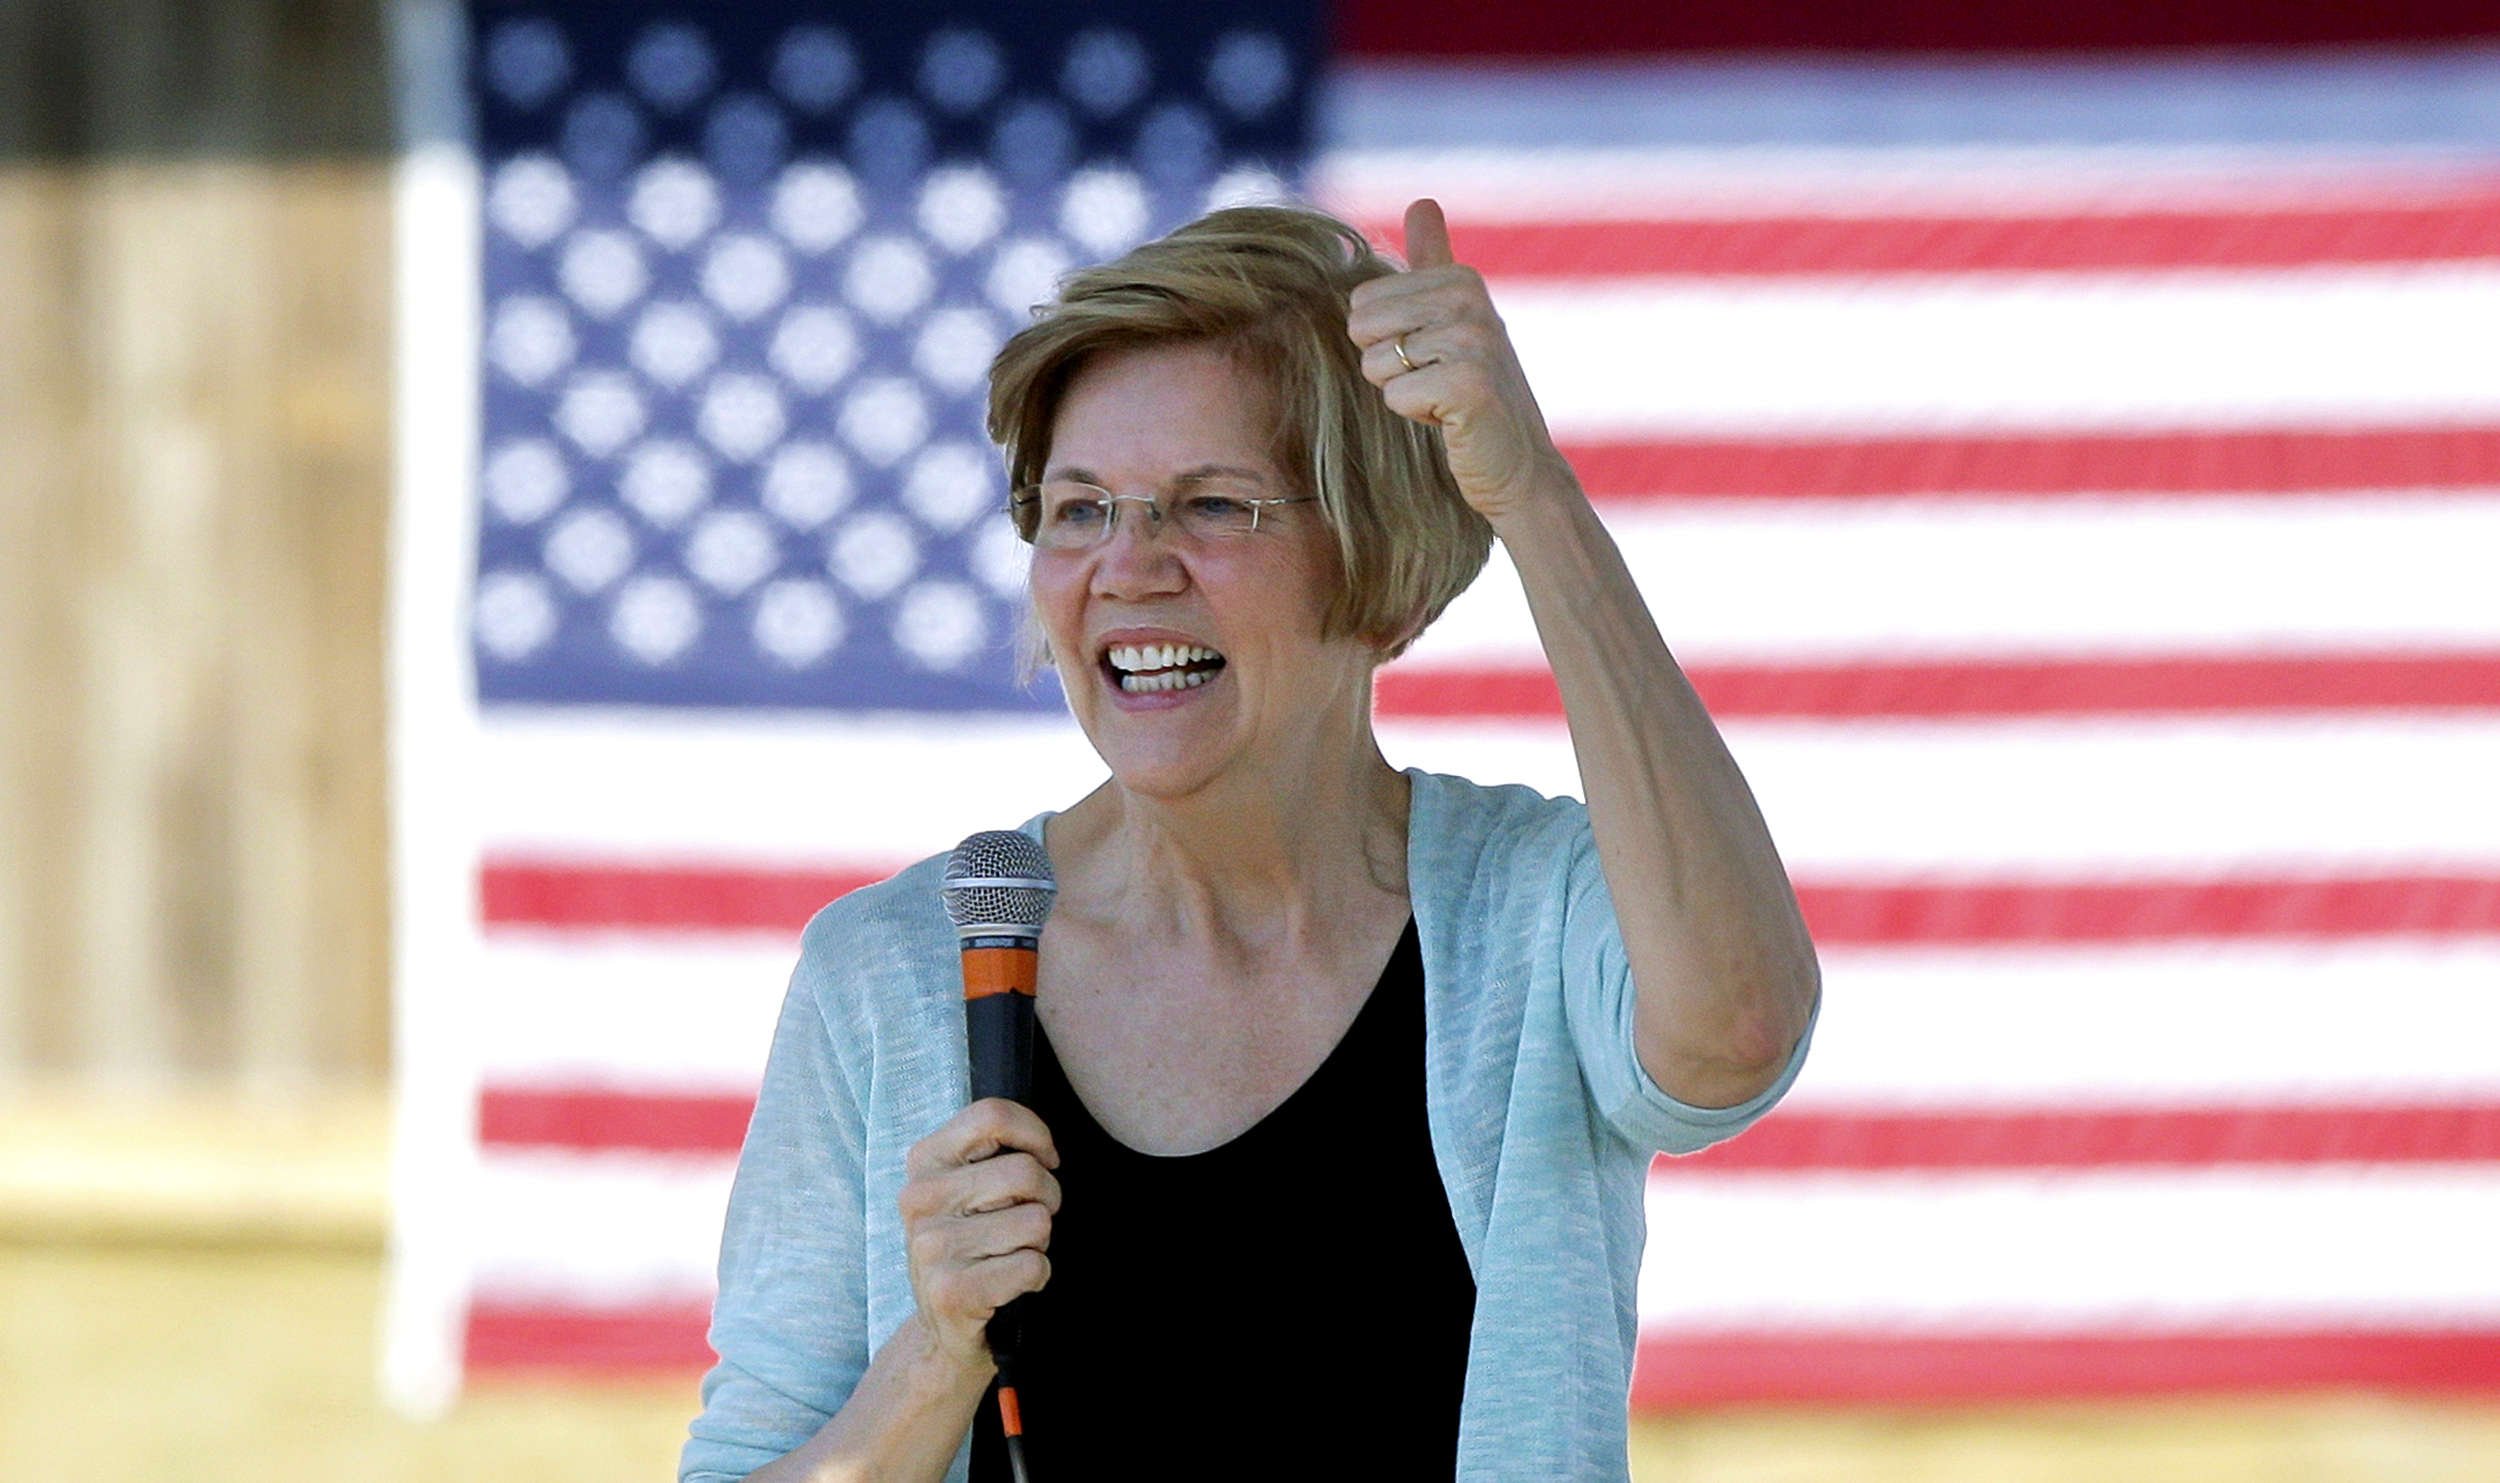 ELECTION 2020: Sen. Elizabeth Warren Launches Bid For The White House